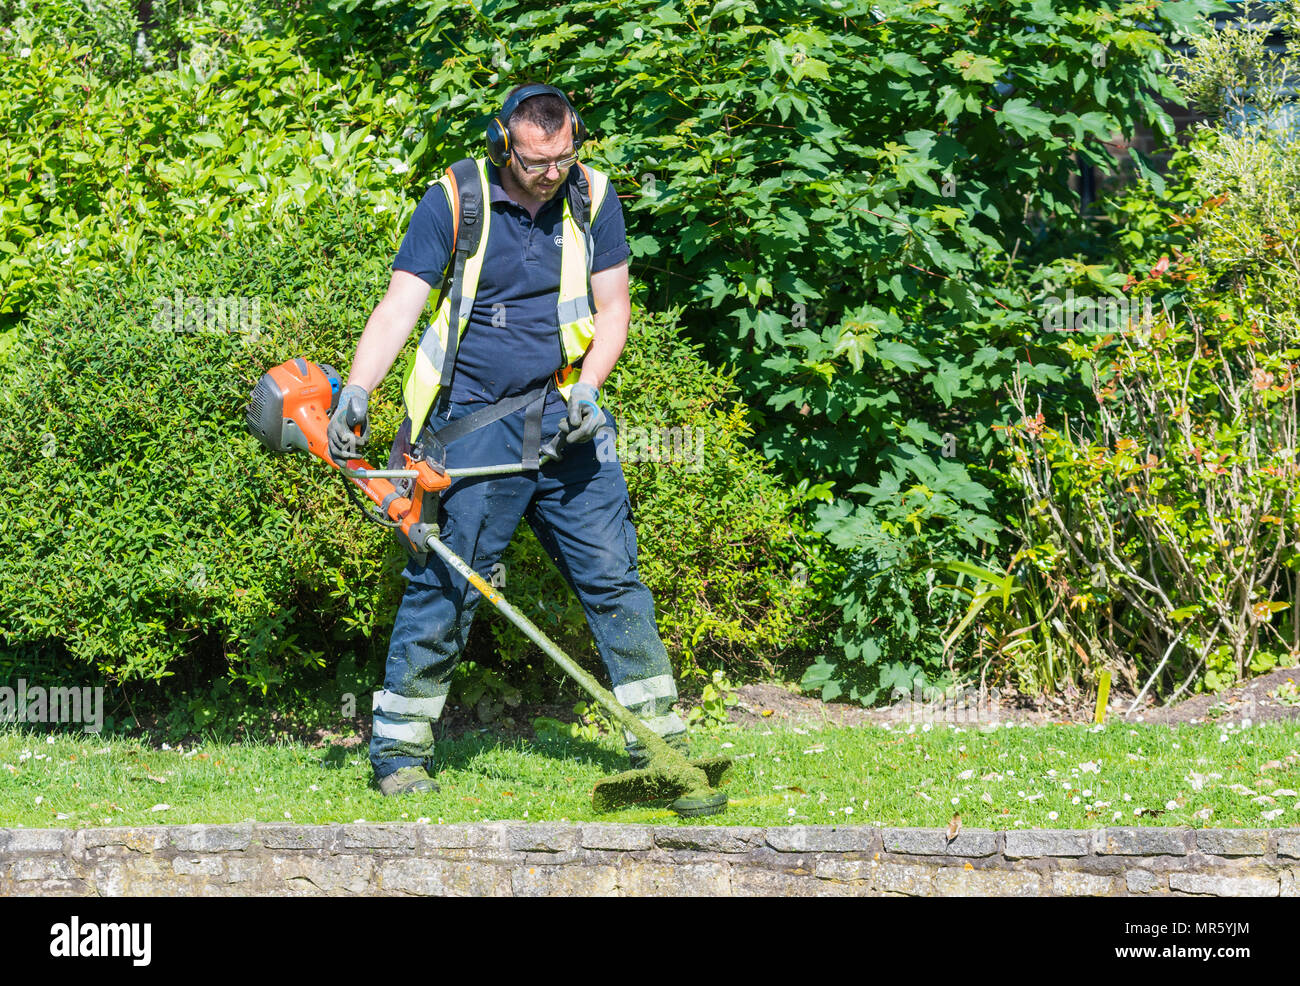 Man strimming grass with a strimmer / trimmer in late Spring in a park in the UK. - Stock Image